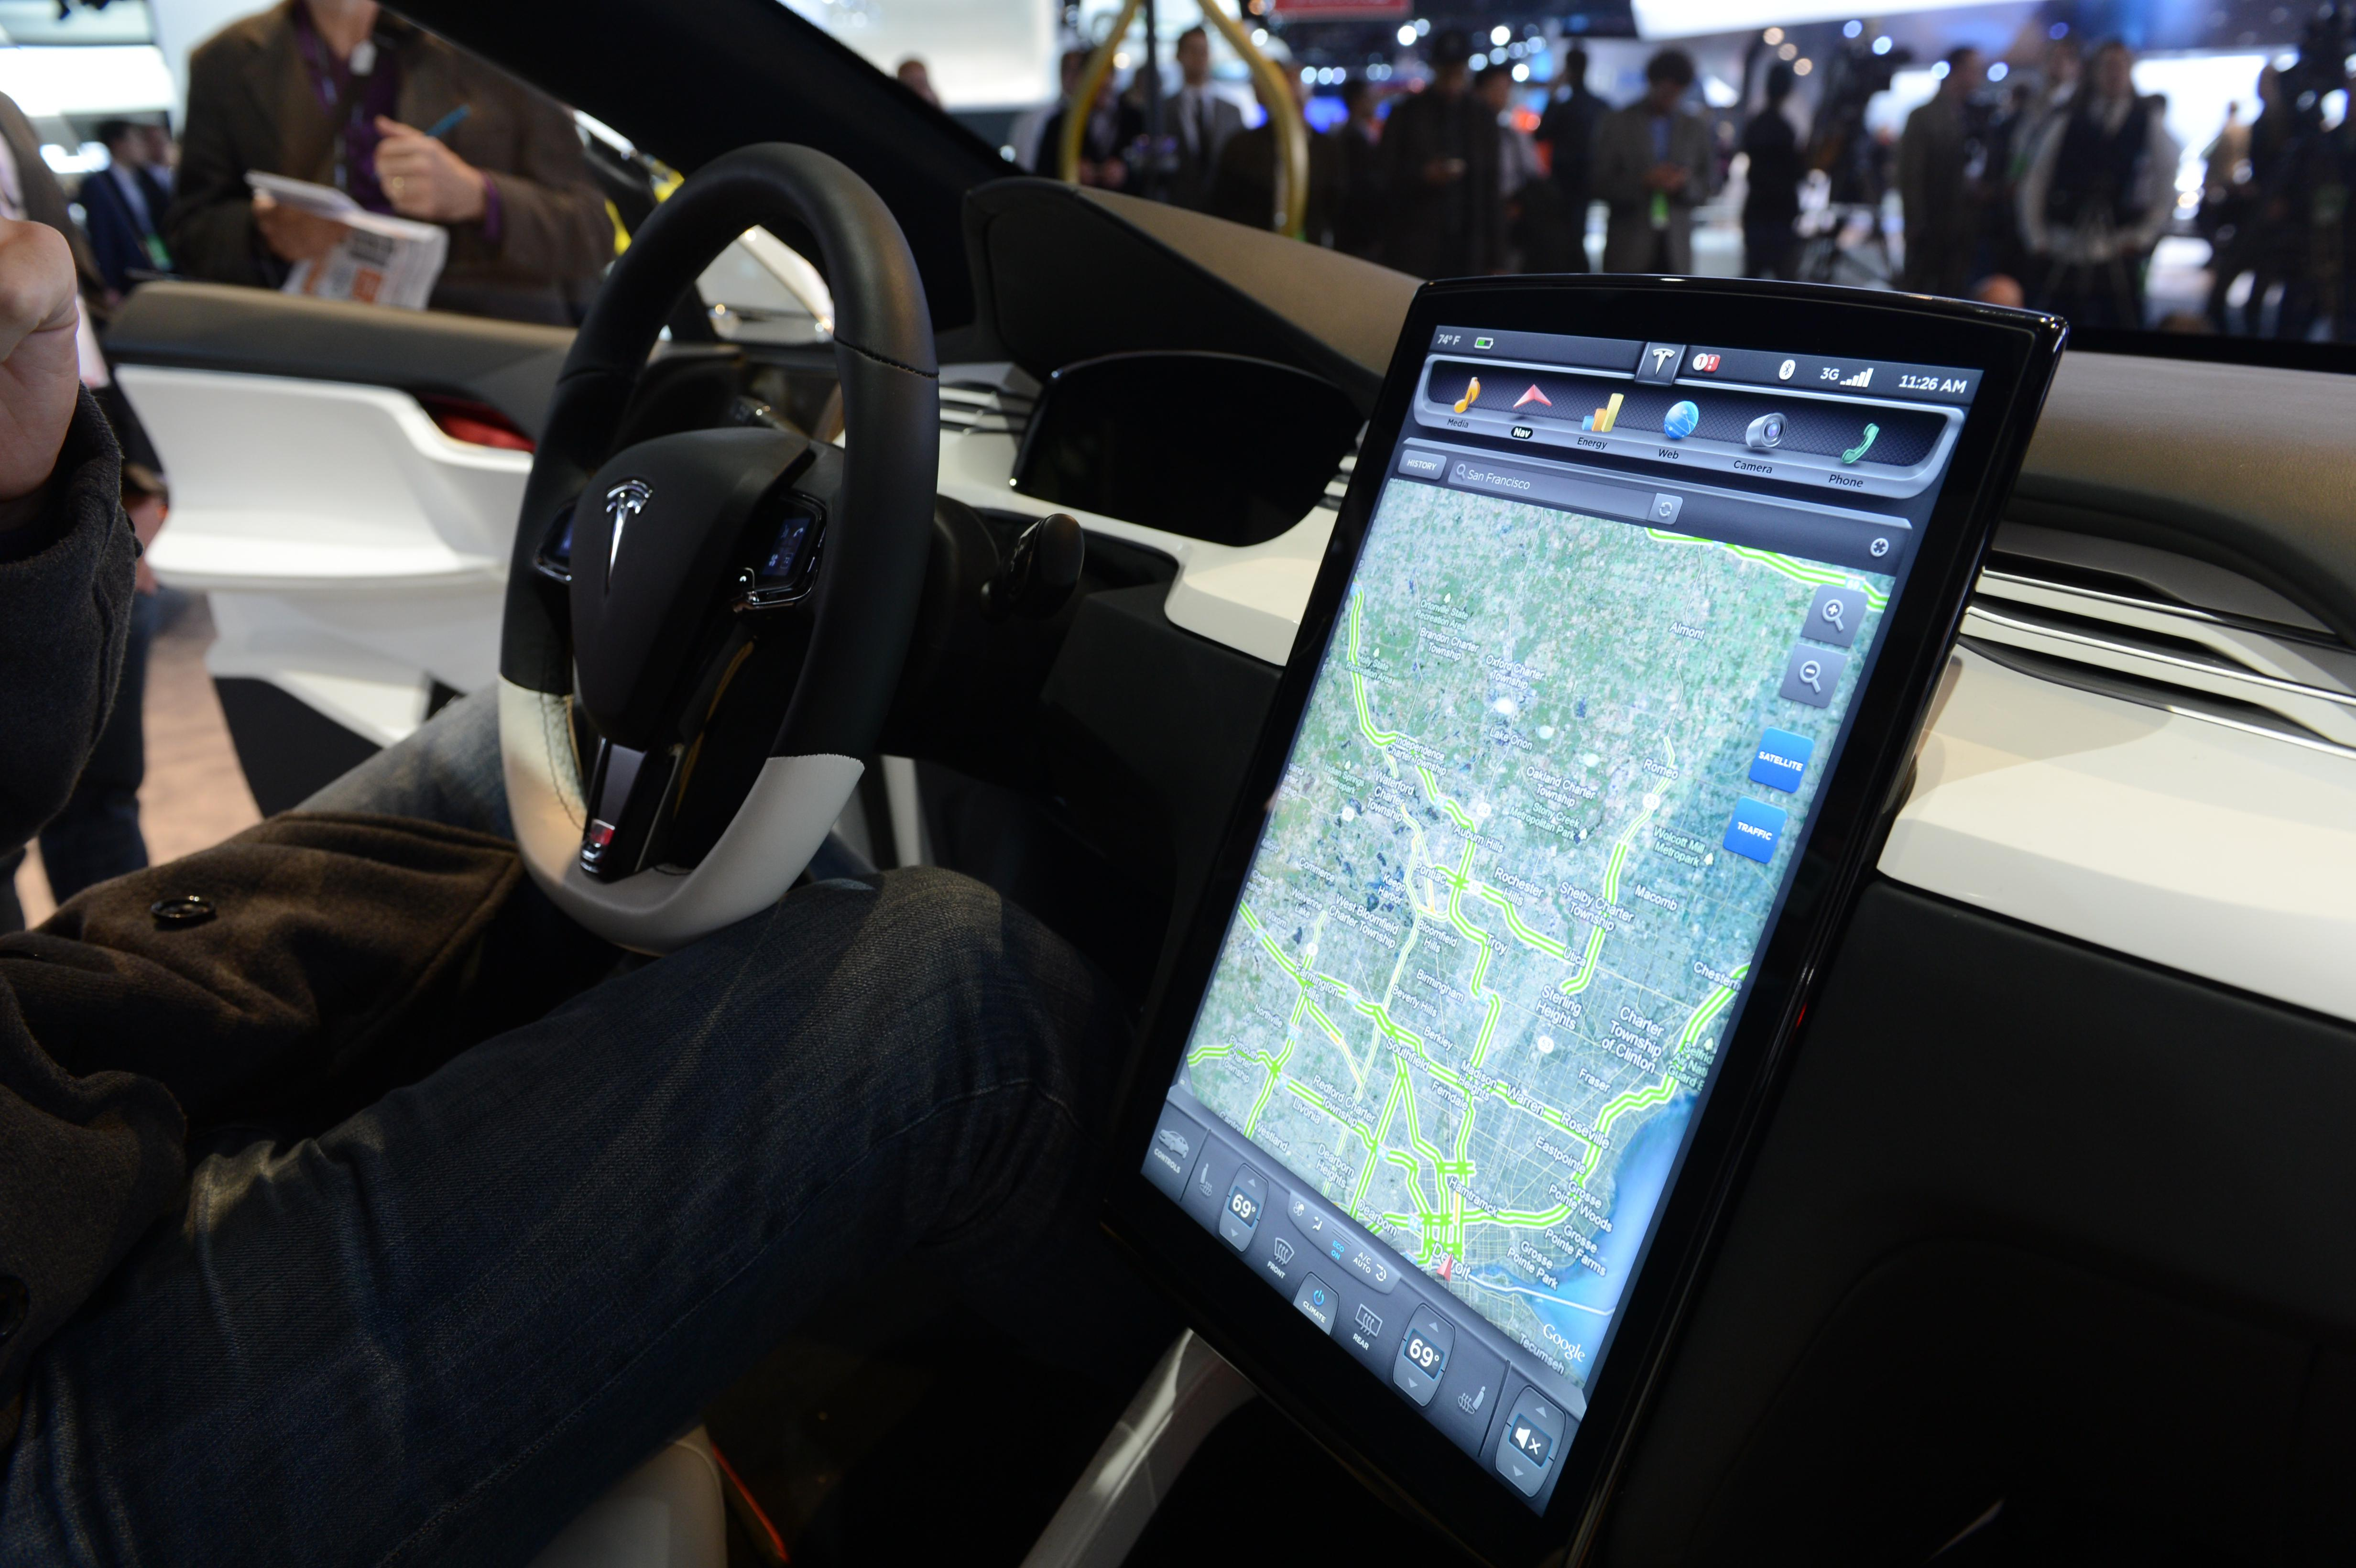 The Tesla Model X computer screen mounted on the dashboard is introduced at the 2013 North American International Auto Show in Detroit.